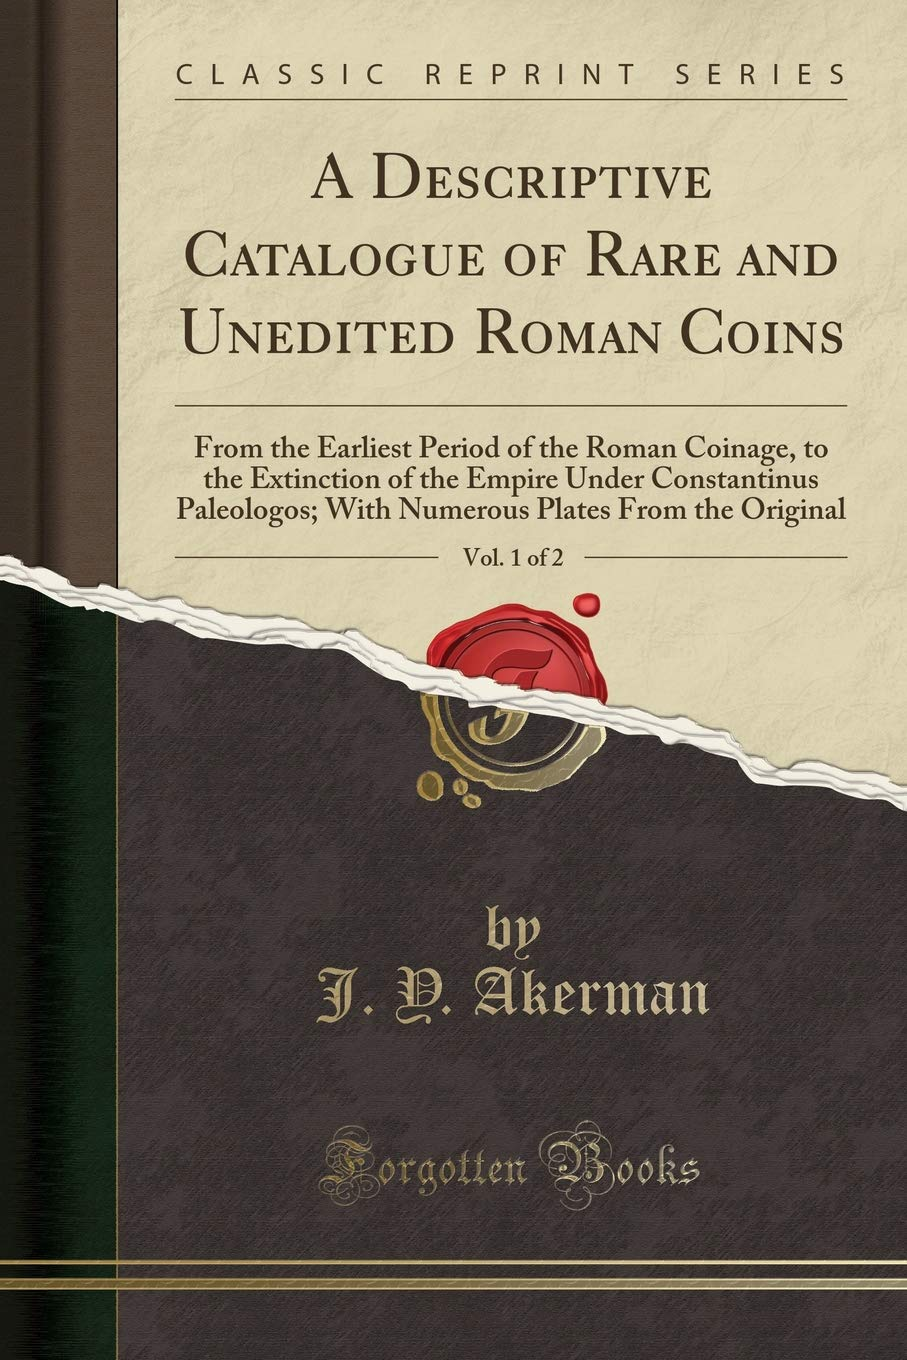 Read Online A Descriptive Catalogue of Rare and Unedited Roman Coins, Vol. 1 of 2: From the Earliest Period of the Roman Coinage, to the Extinction of the Empire ... Plates From the Original (Classic Reprint) pdf epub